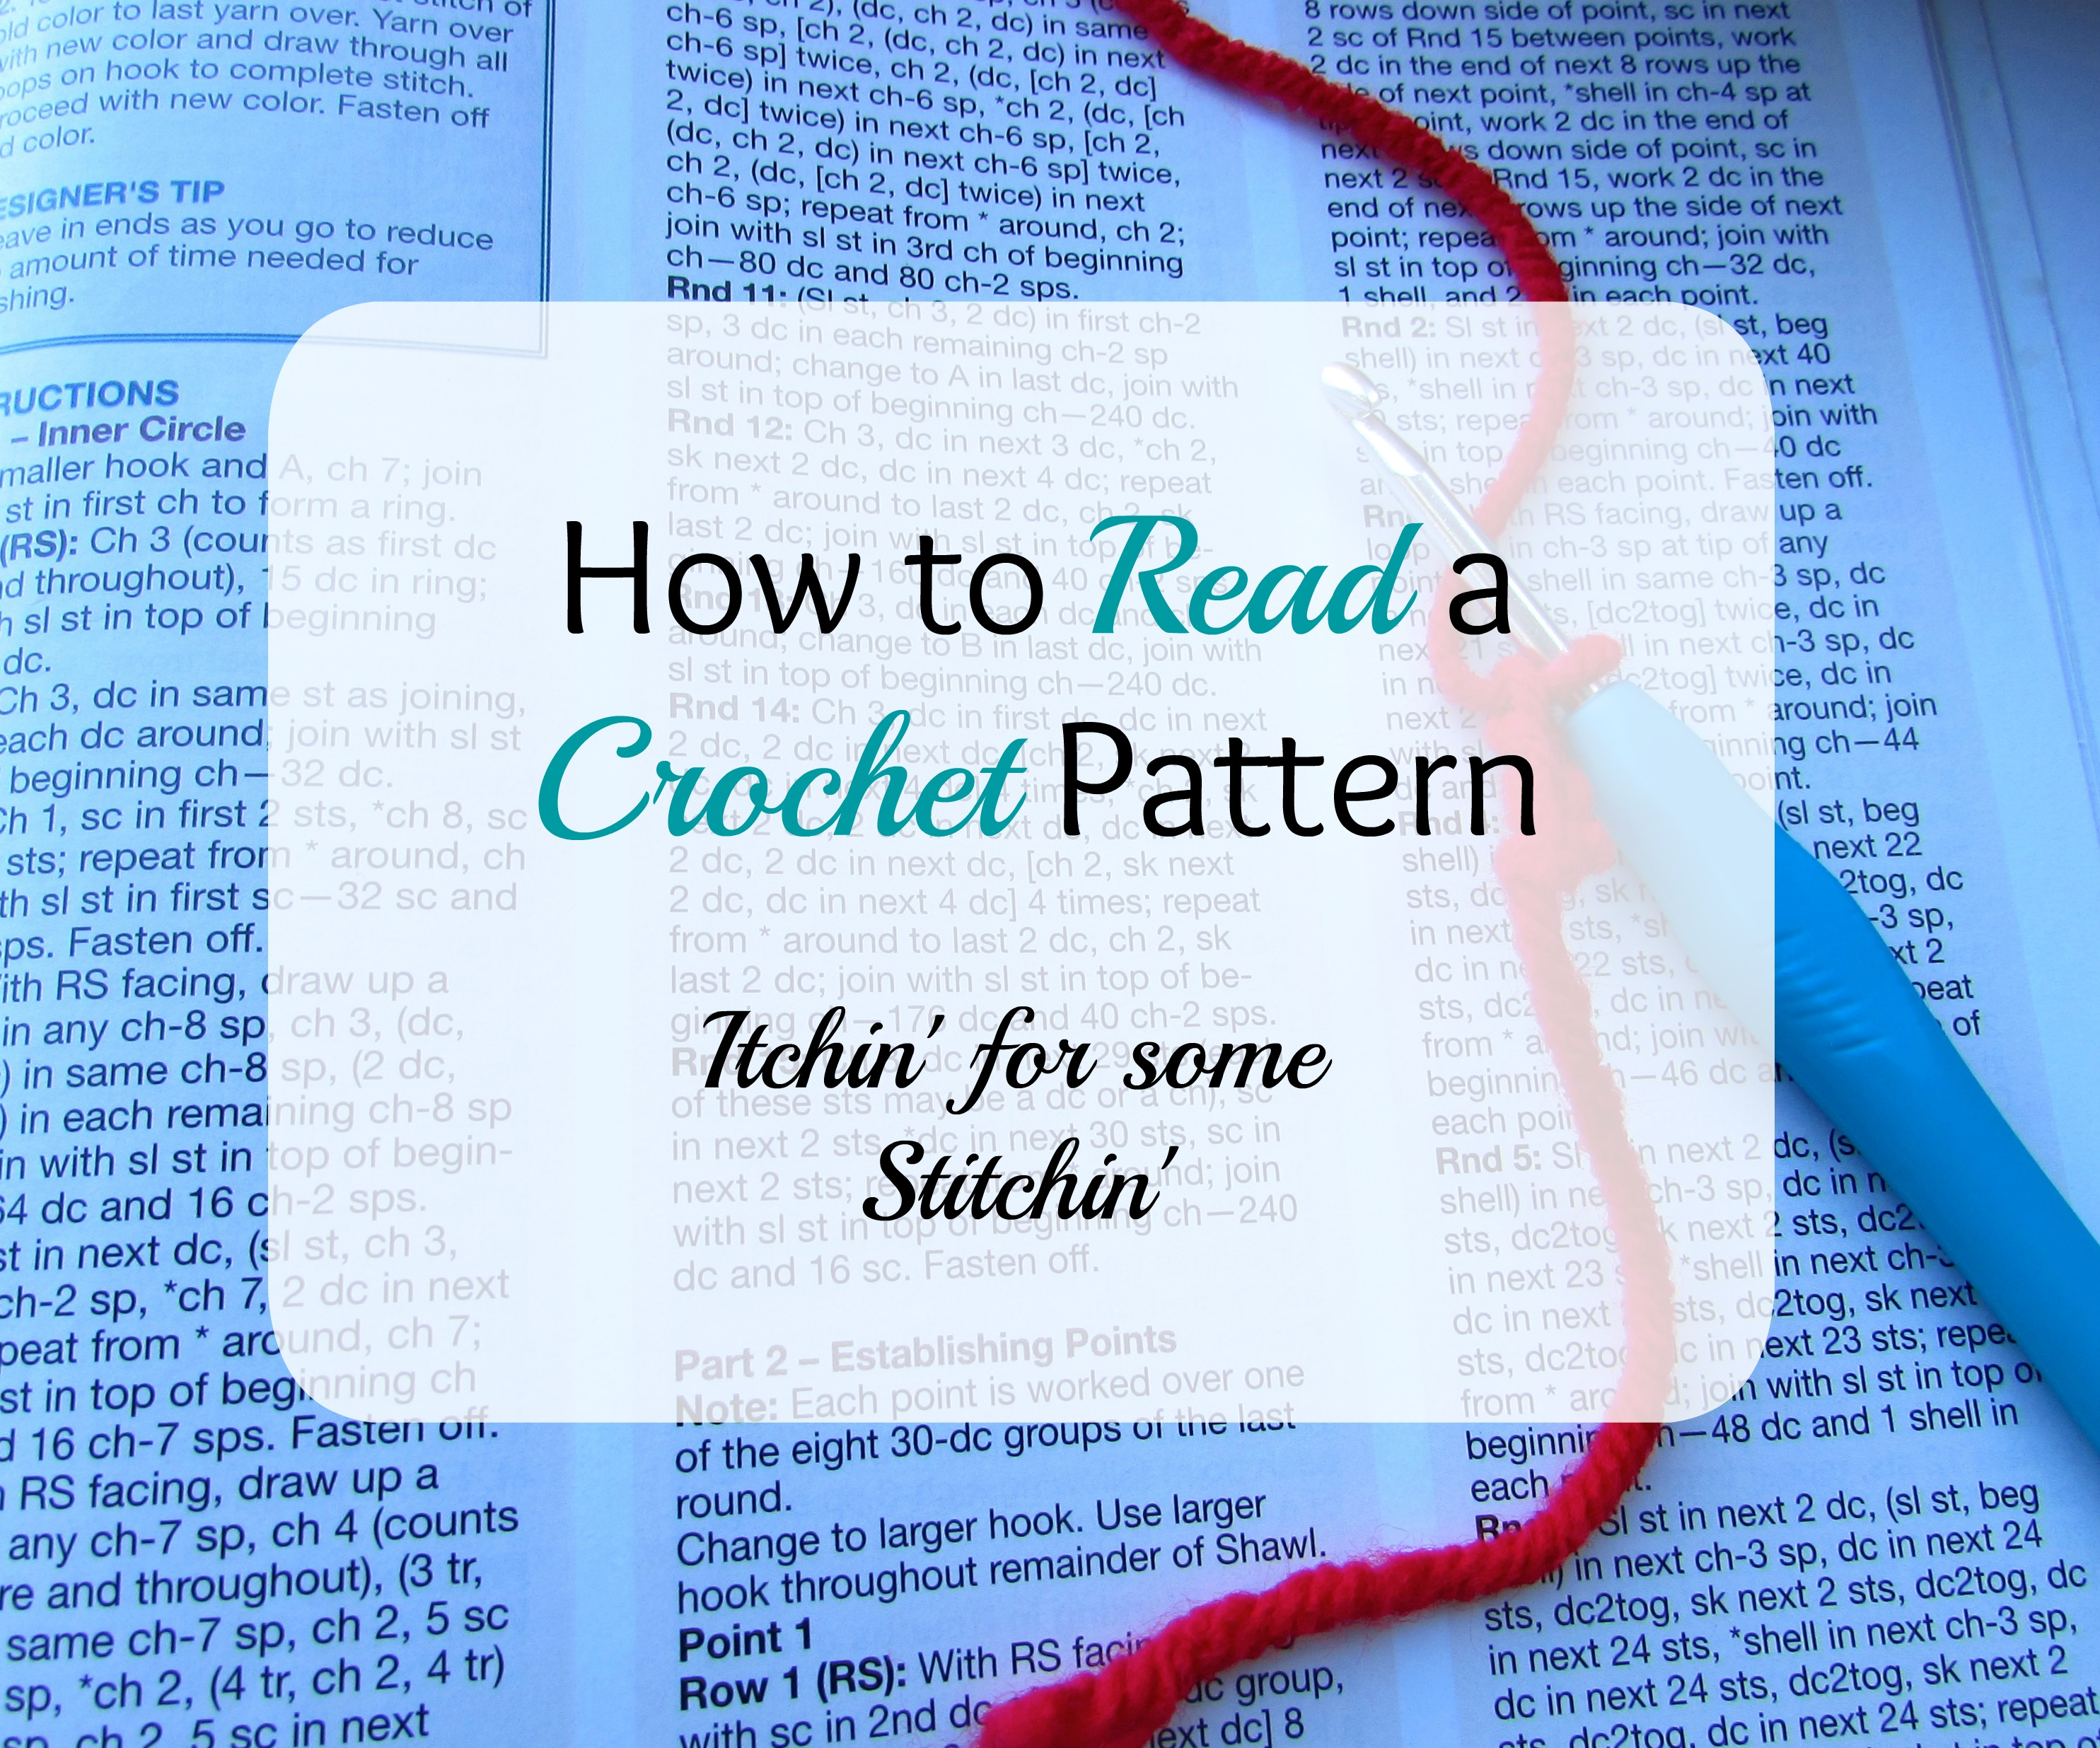 How to read a crochet pattern for beginners itchin for some how to read a crochet pattern for beginners itchin for some stitchin bankloansurffo Images